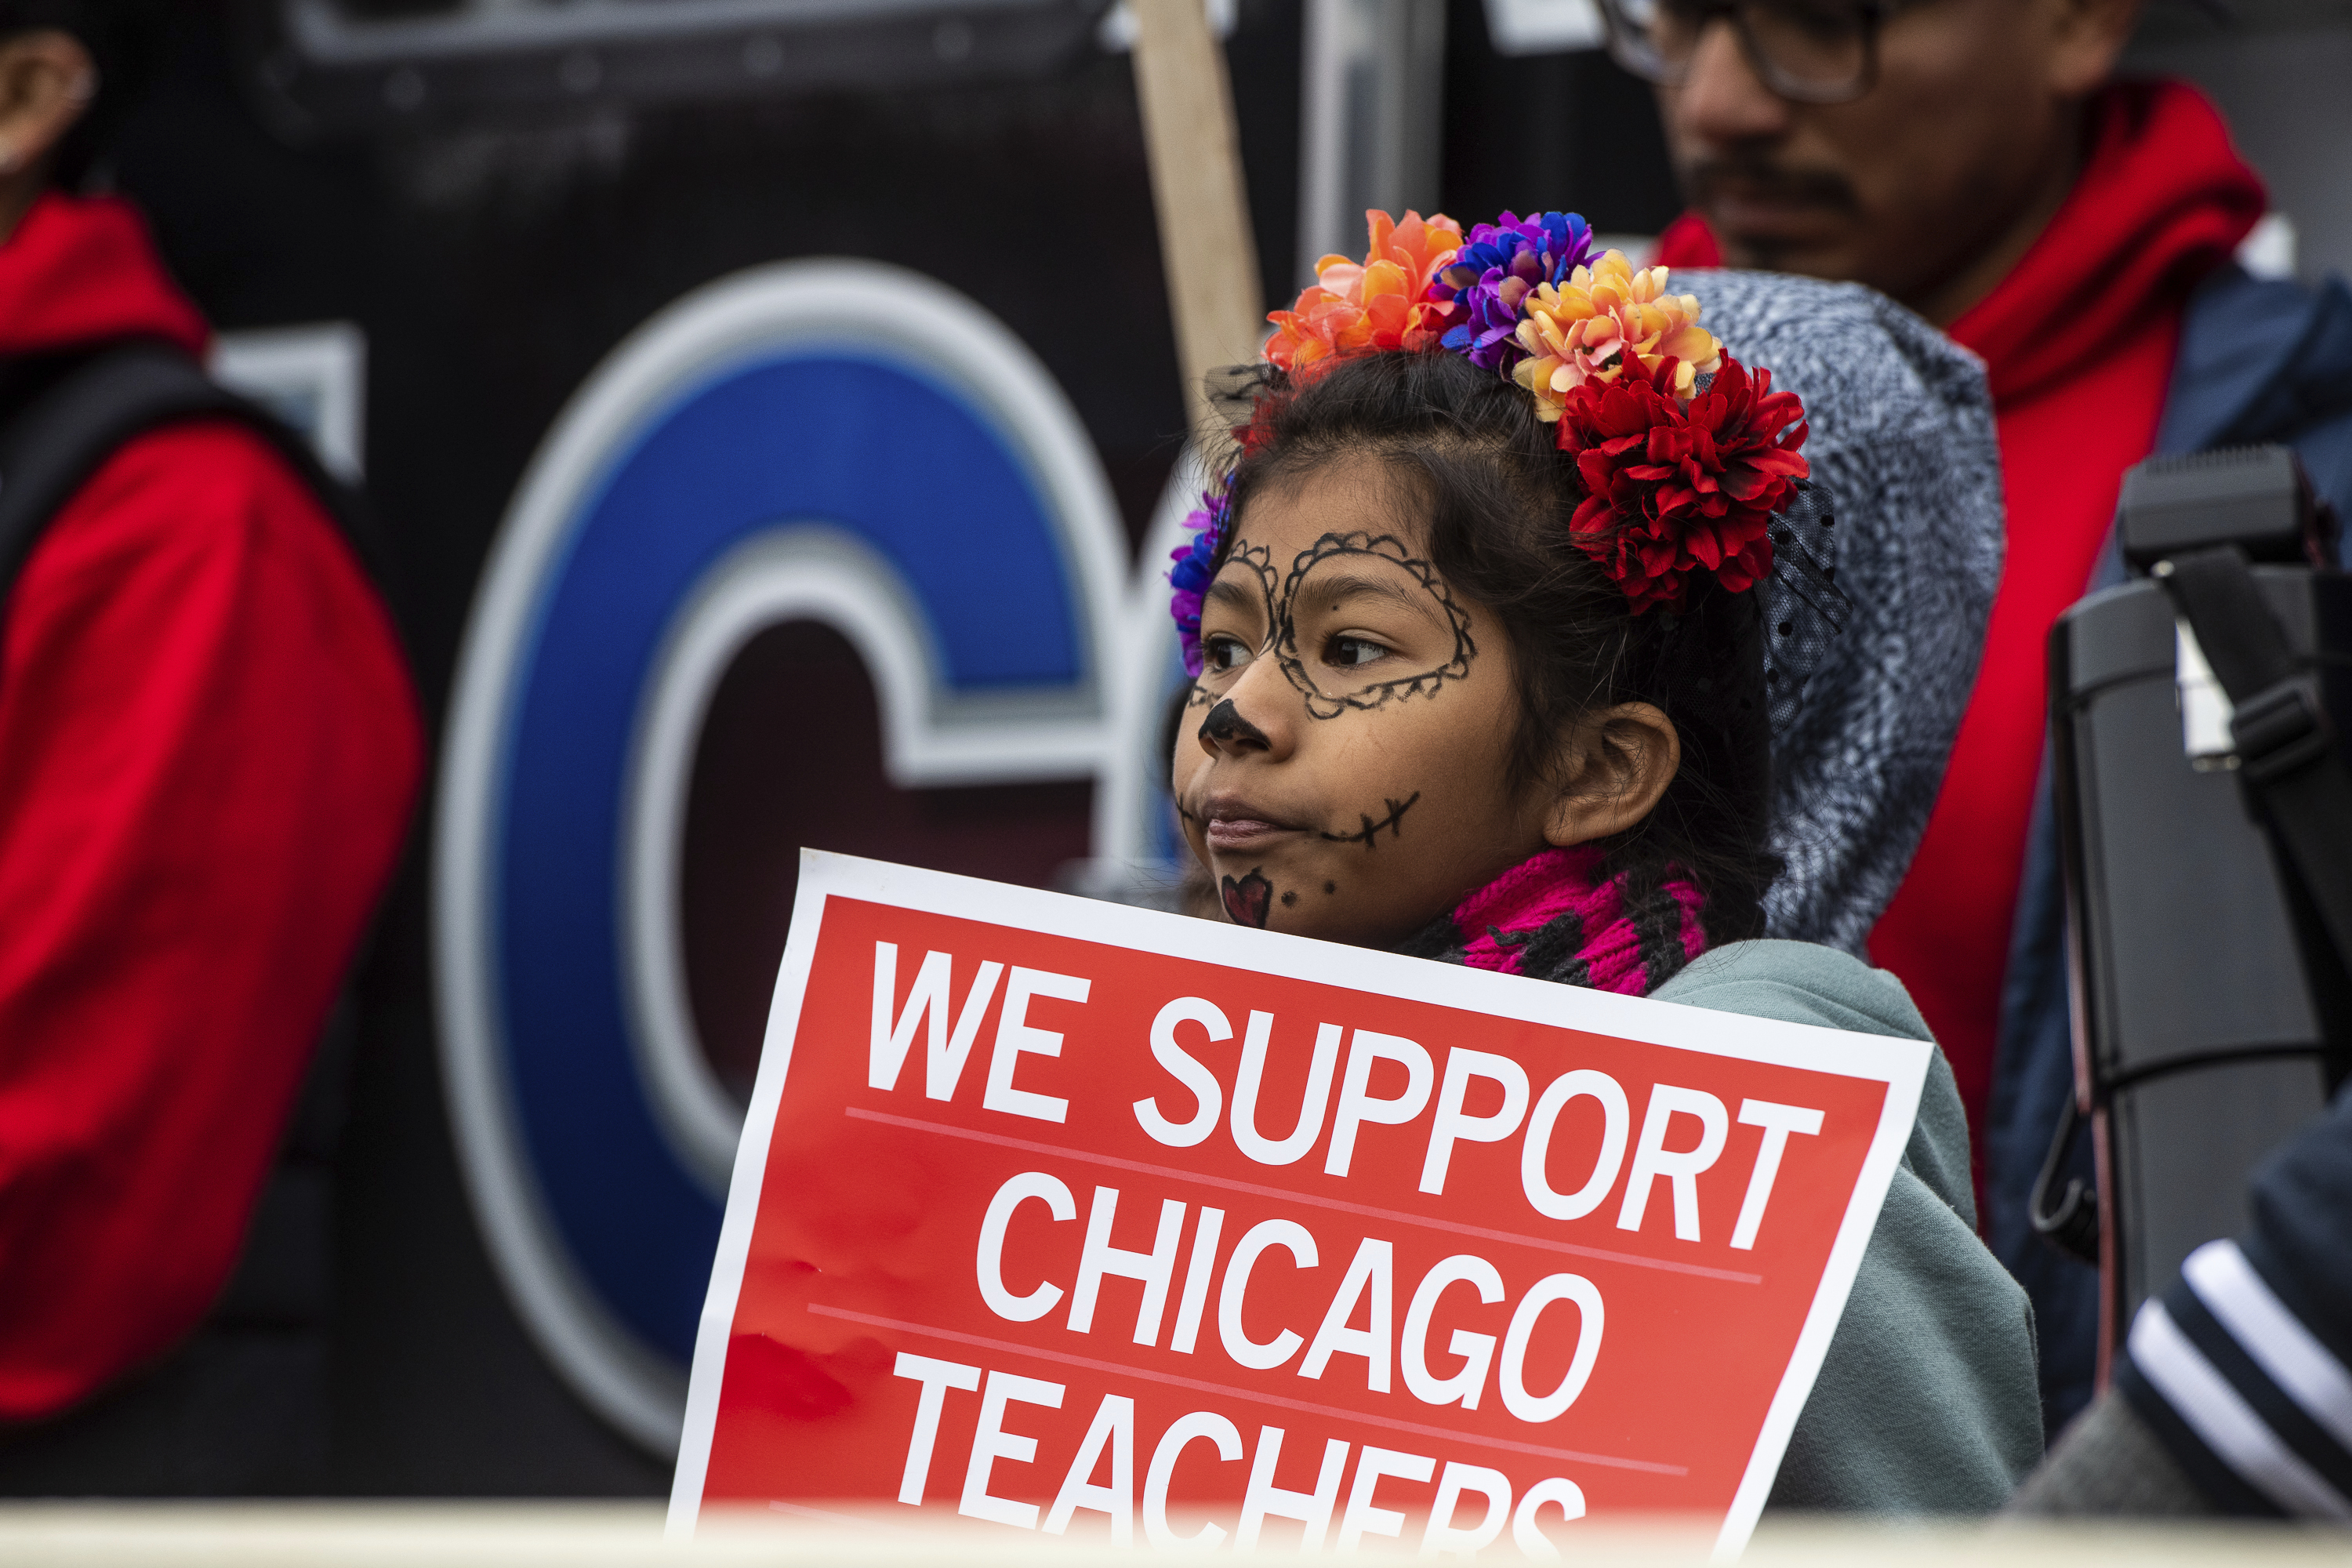 A child holds a sign at a Chicago Teachers Union rally during the strike.